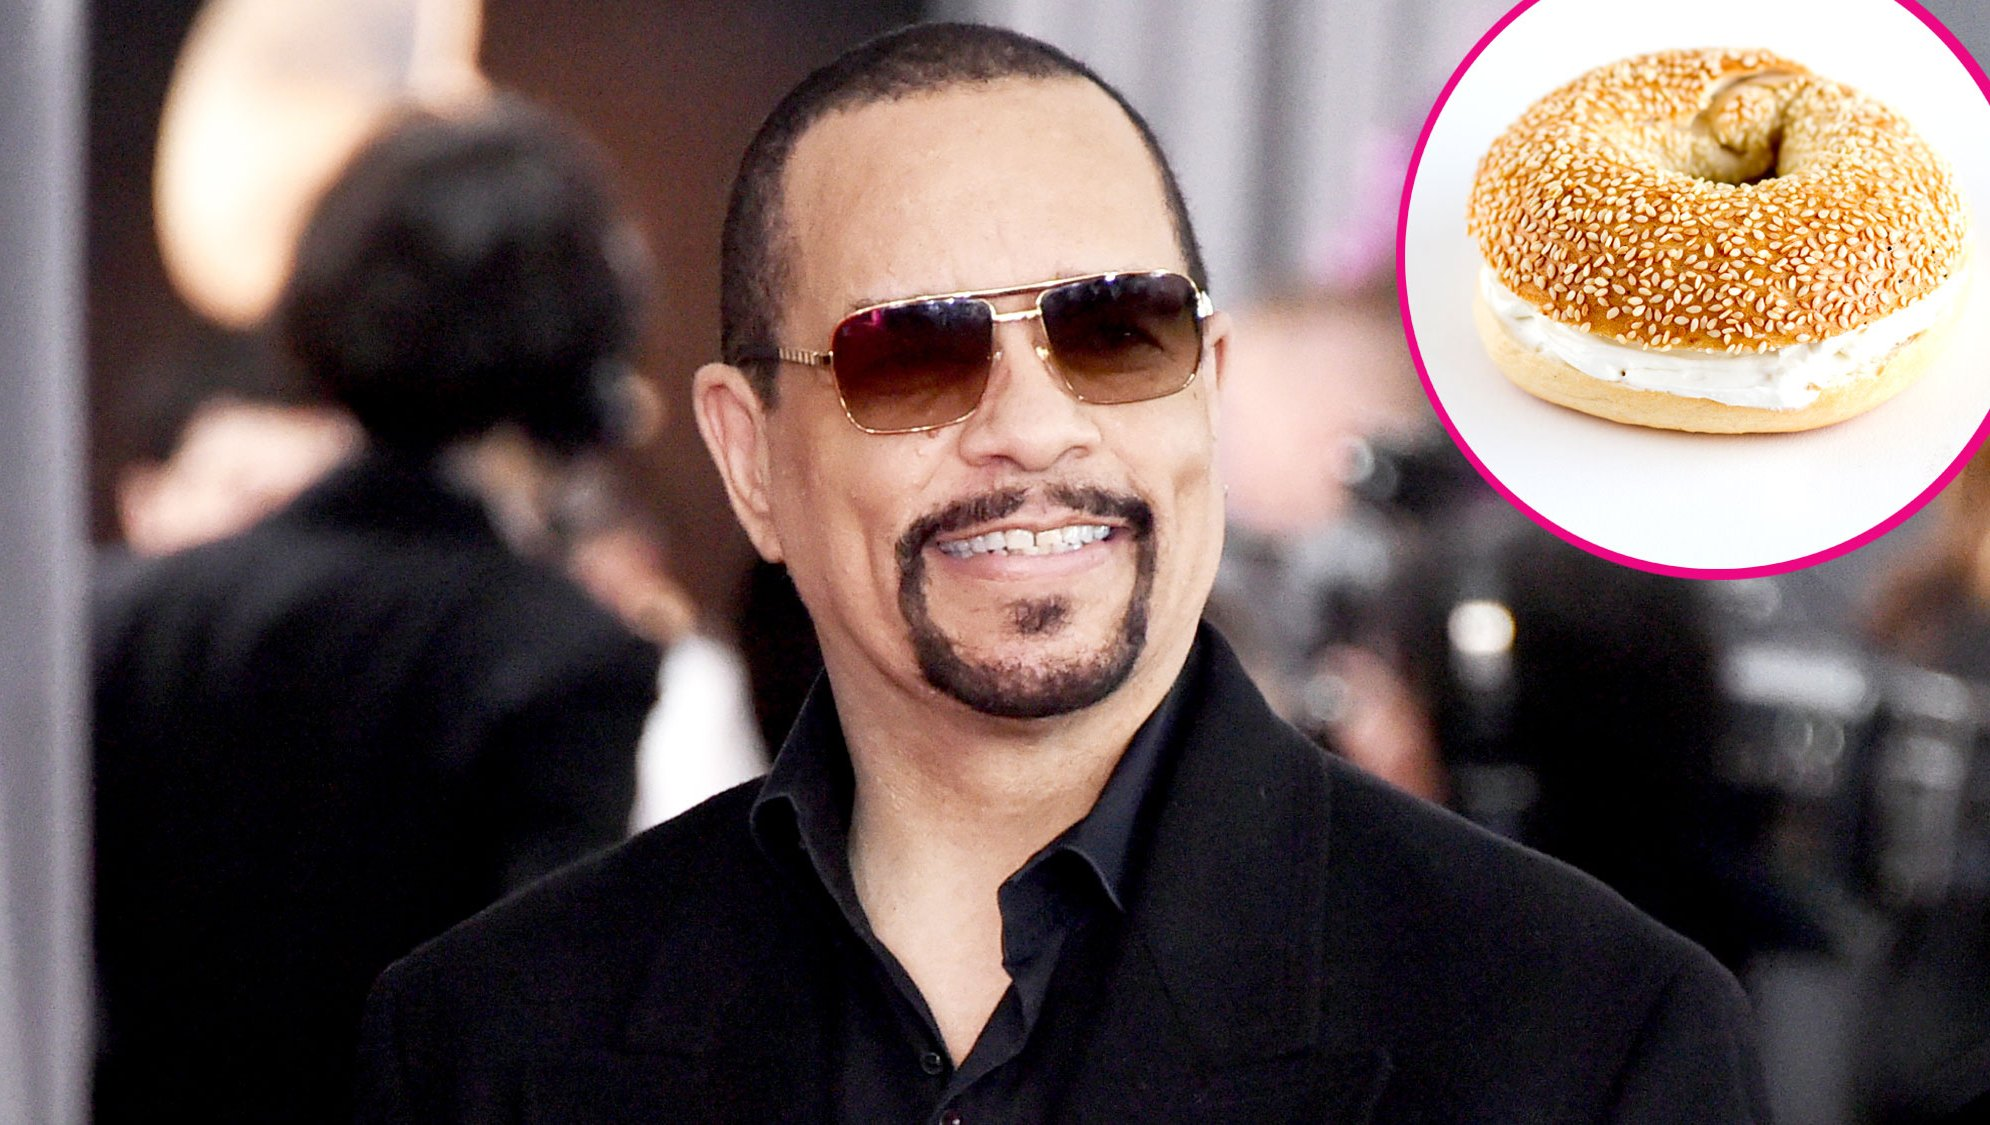 Ice-T and a bagel